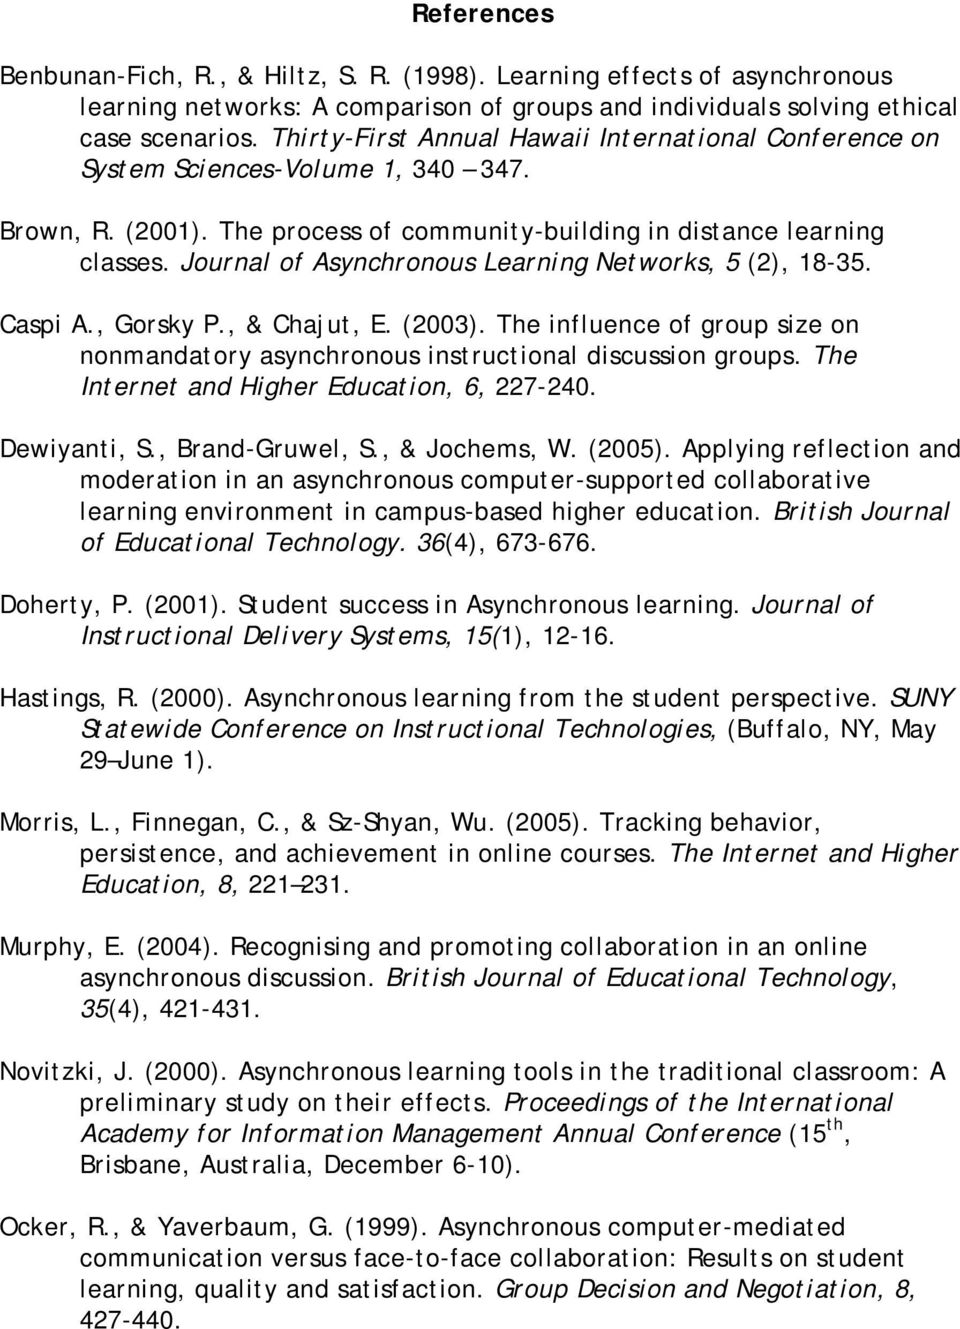 Journal of Asynchronous Learning Networks, 5 (2), 18-35. Caspi A., Gorsky P., & Chajut, E. (2003). The influence of group size on nonmandatory asynchronous instructional discussion groups.